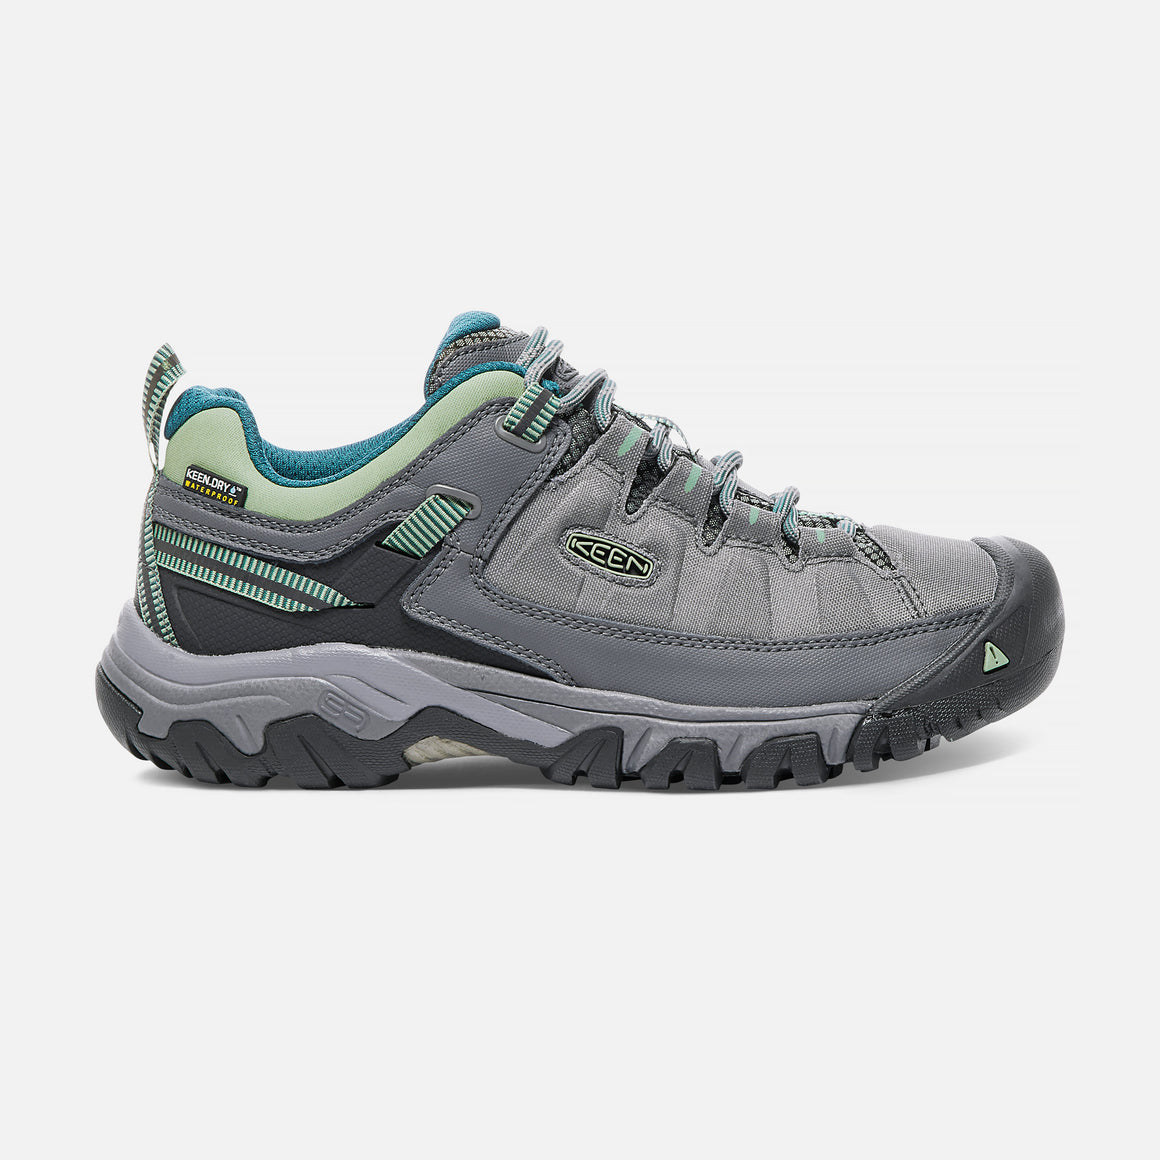 Keen Women's Taeghee EXP Waterproof Hiking Shoe - Steel Grey/Basil 1017746 - ShoeShackOnline